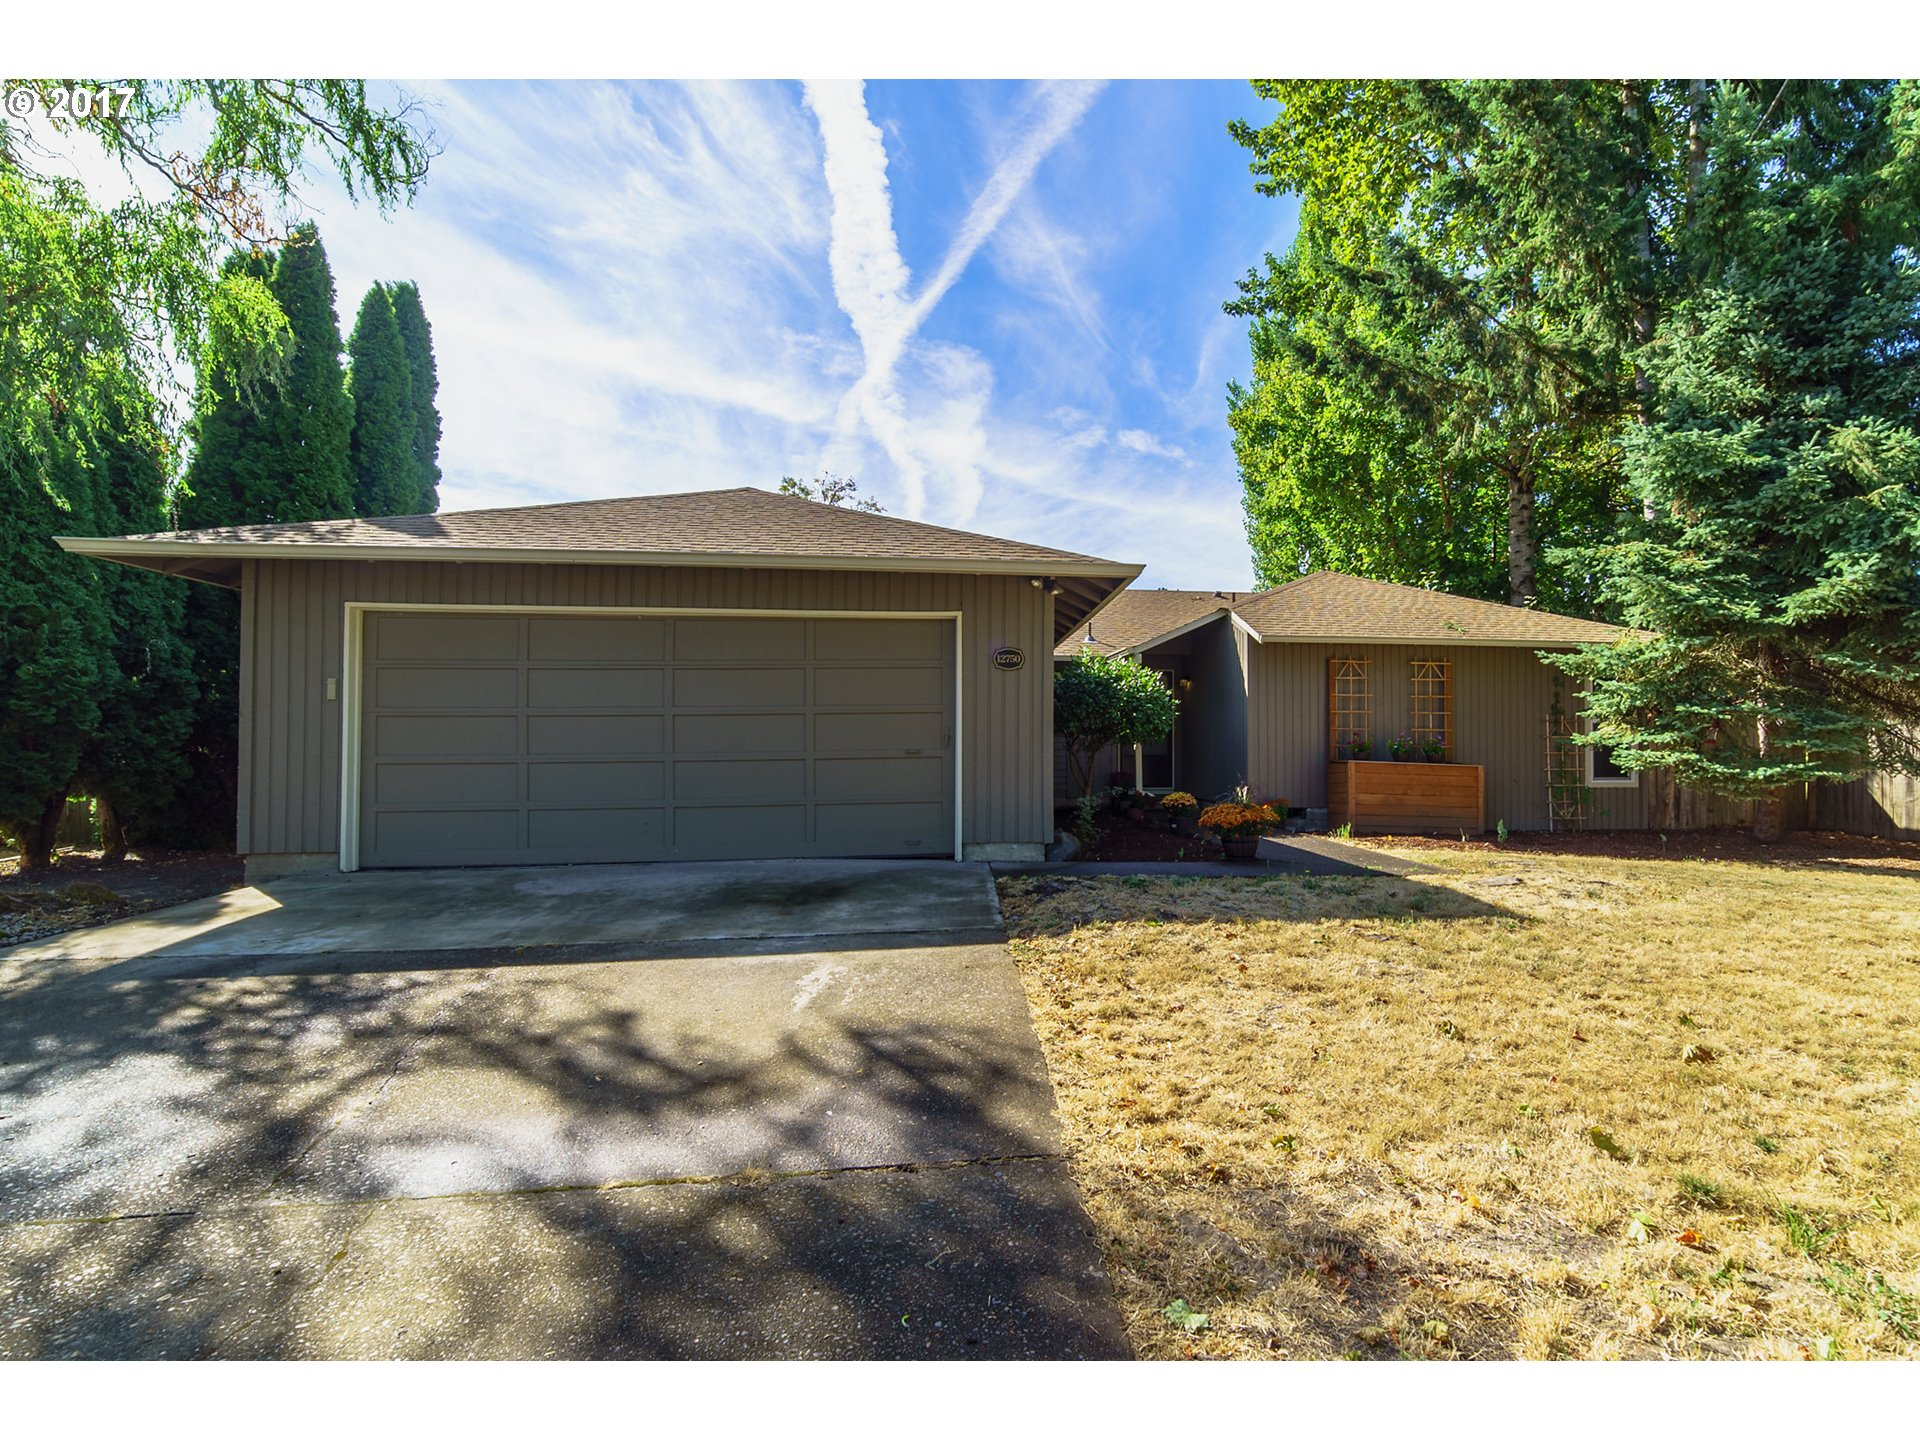 Turn key home with all the updates, appliances included! Private and manageable yard, new deck and doors just added overlooking the space. Newer flooring and lighting throughout with many windows replaced and upgraded. Super convenient location from schools and only 1 block from the Rec Center!